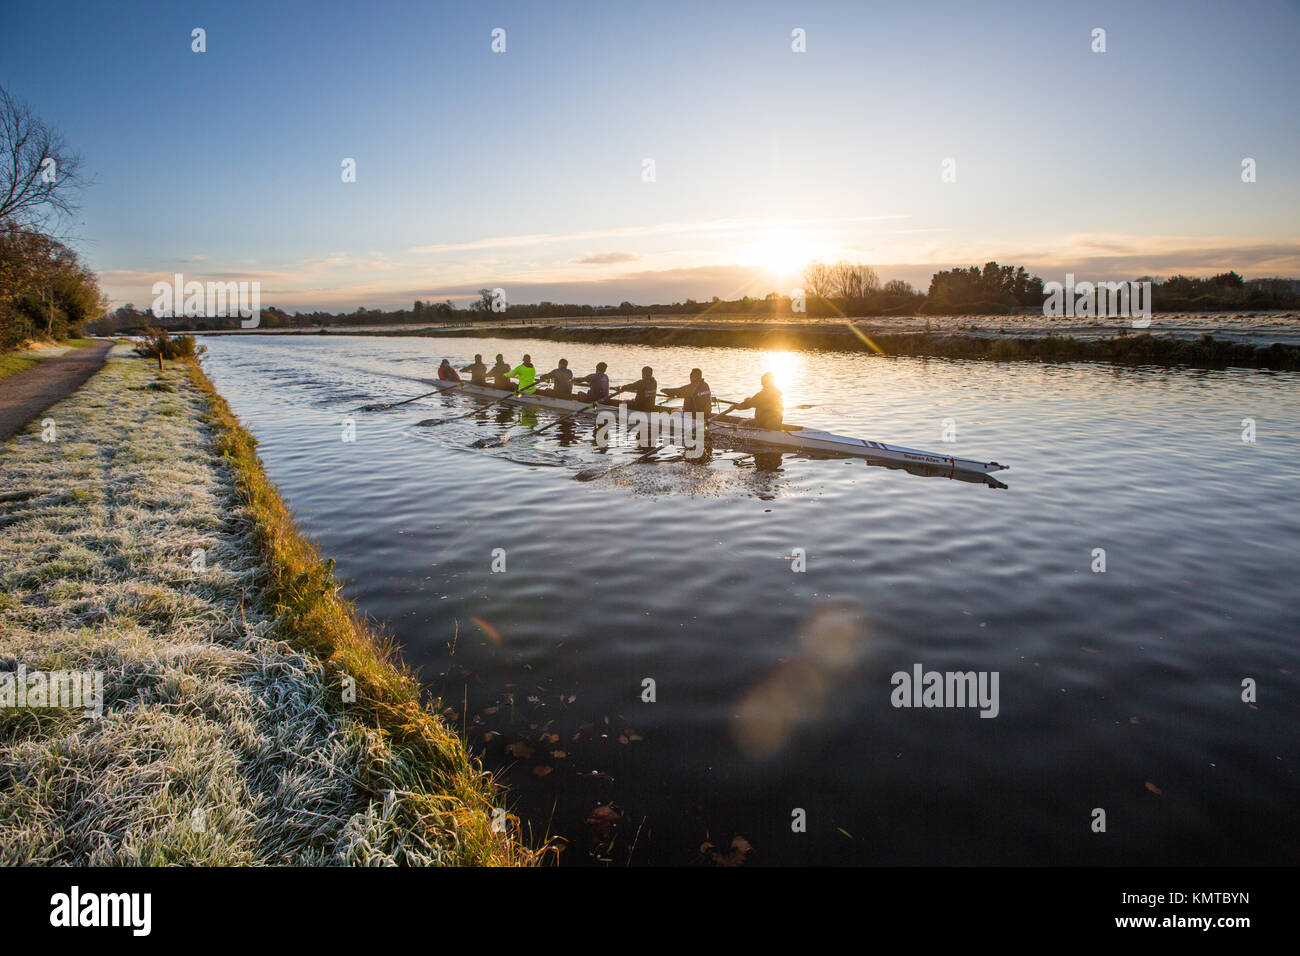 Rowers out on the River Cam in Cambridge on a cold freezing  Saturday morning at sunrise. - Stock Image